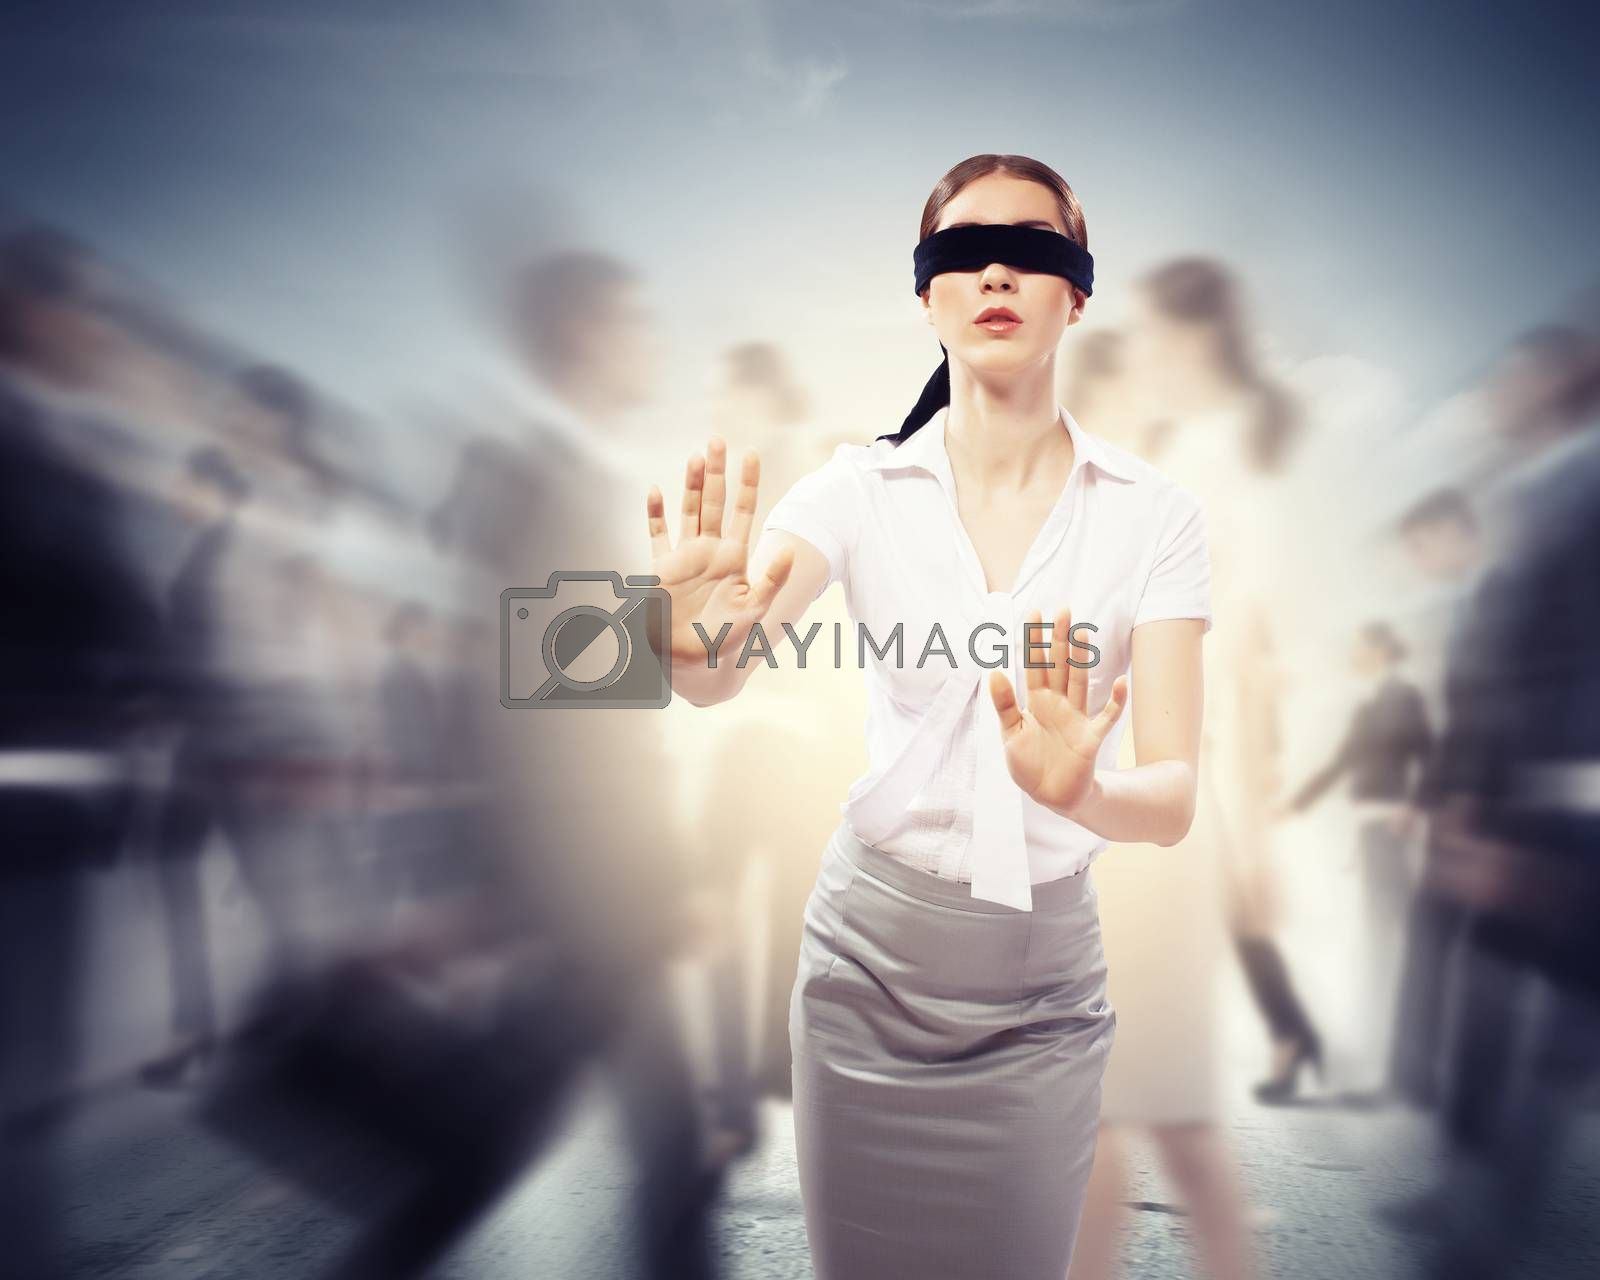 Businesswoman in blindfold among group of people by Sergey Nivens